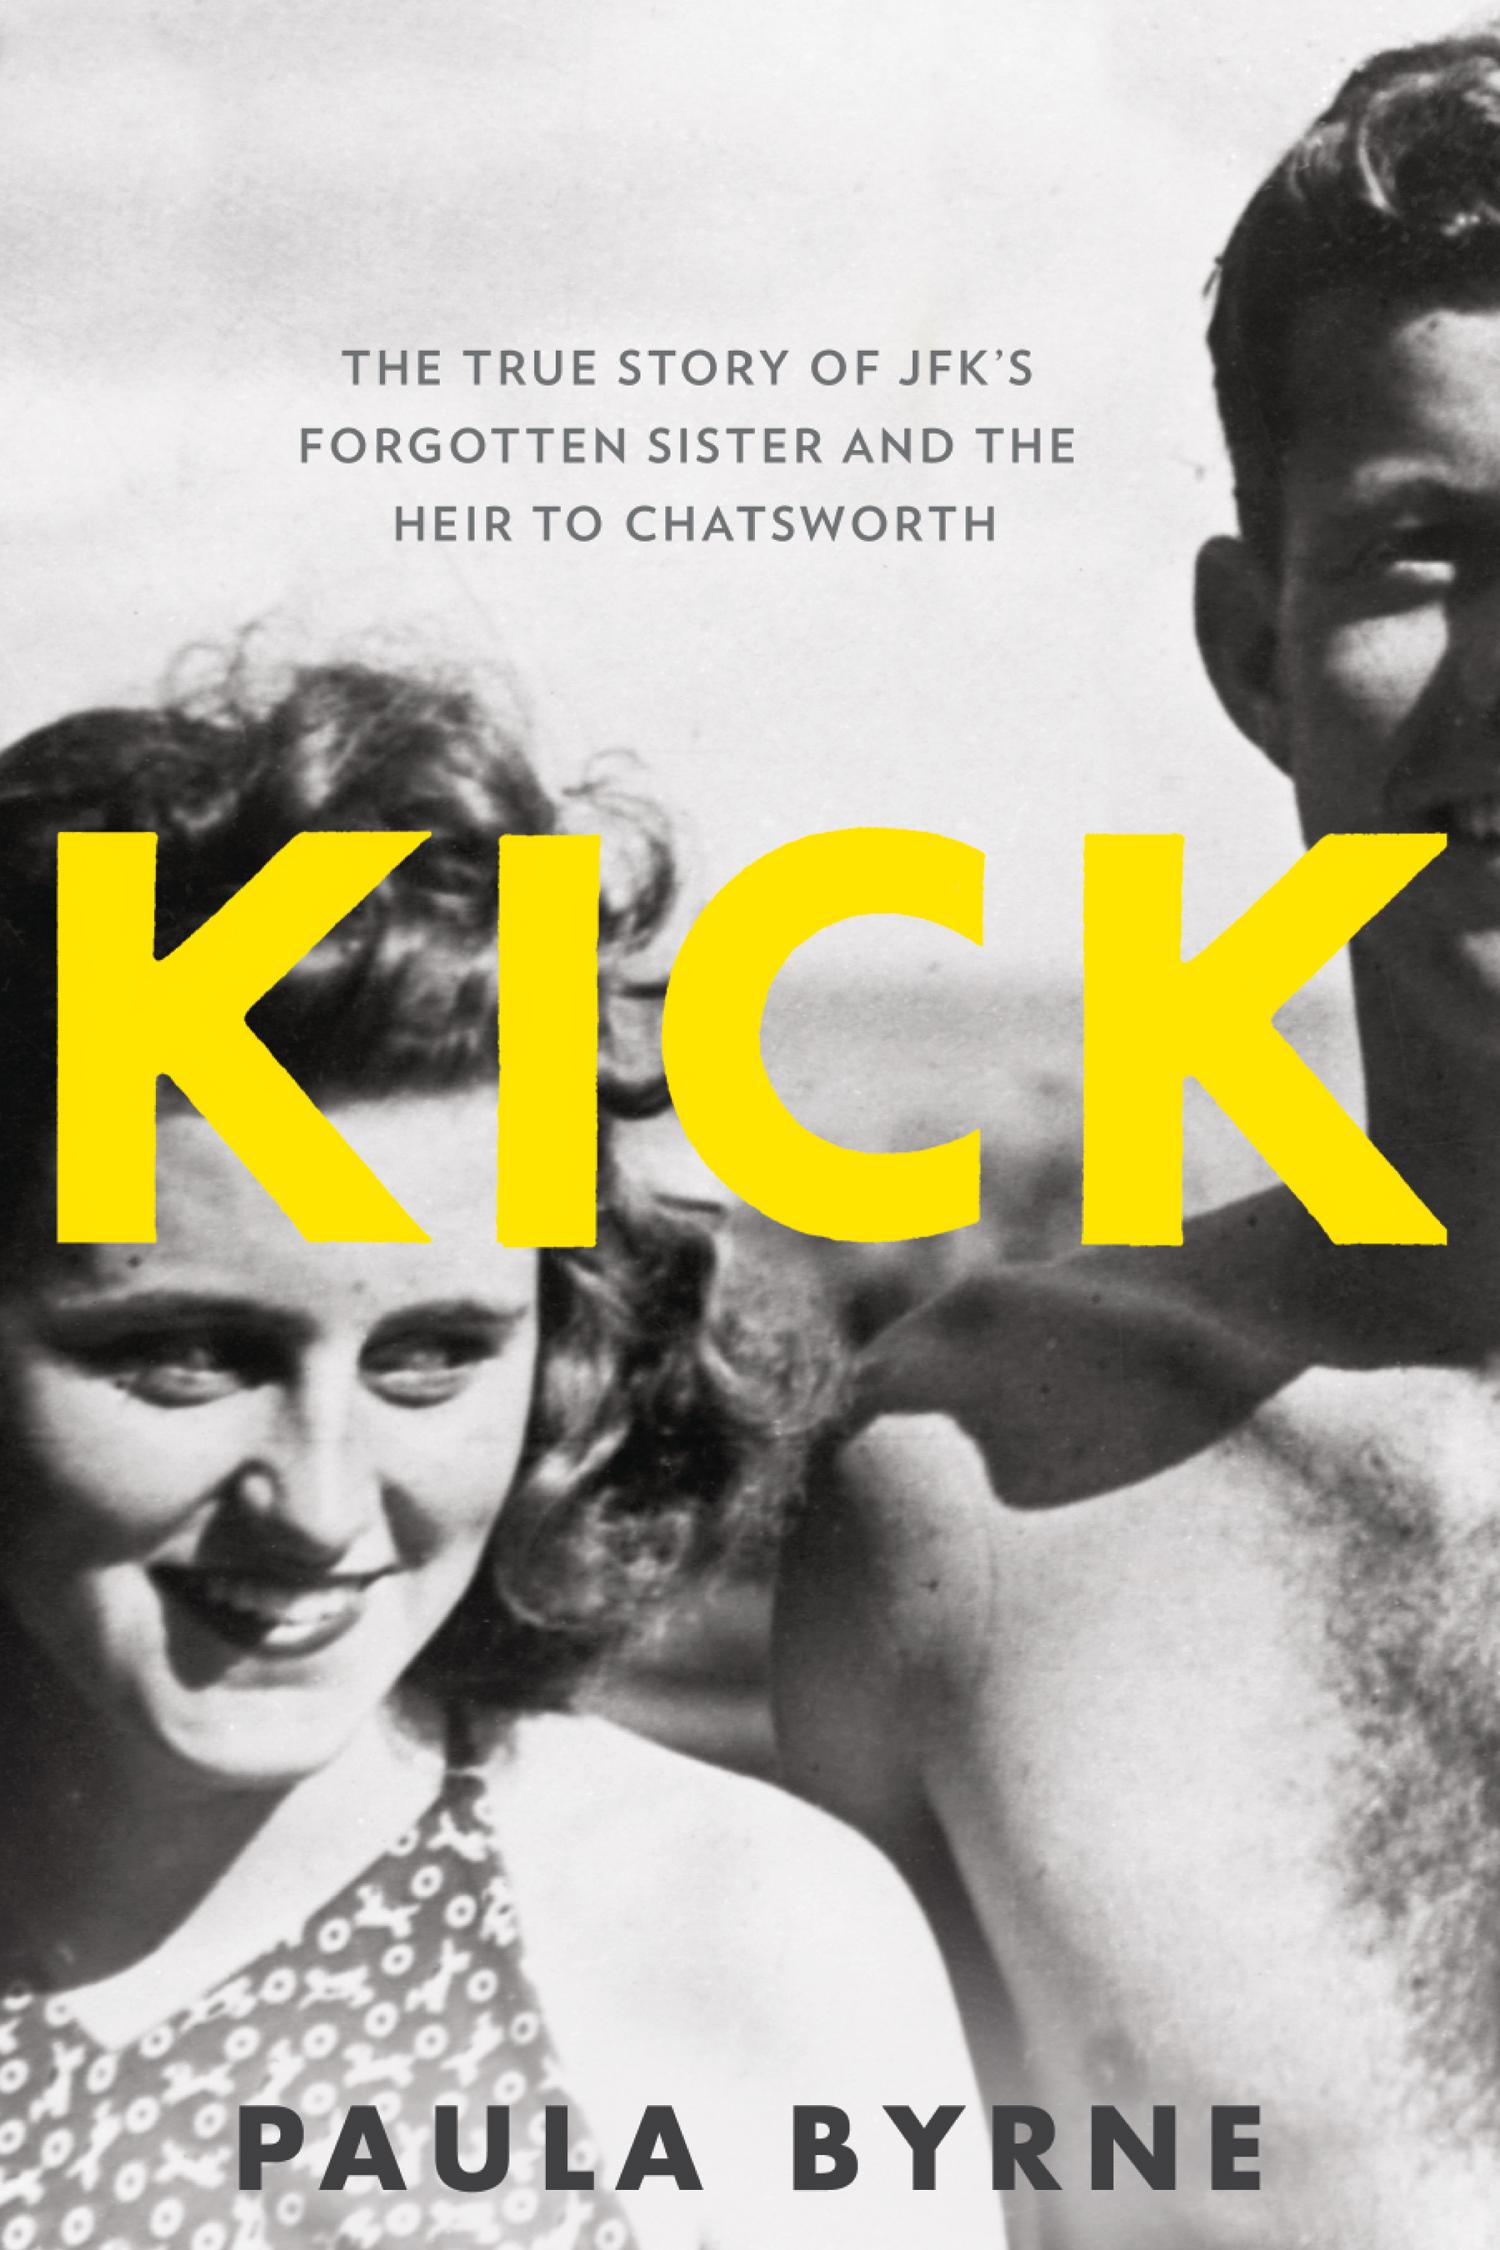 Kick: The True Story of JFK's Sister and the Heir to Chatsworth